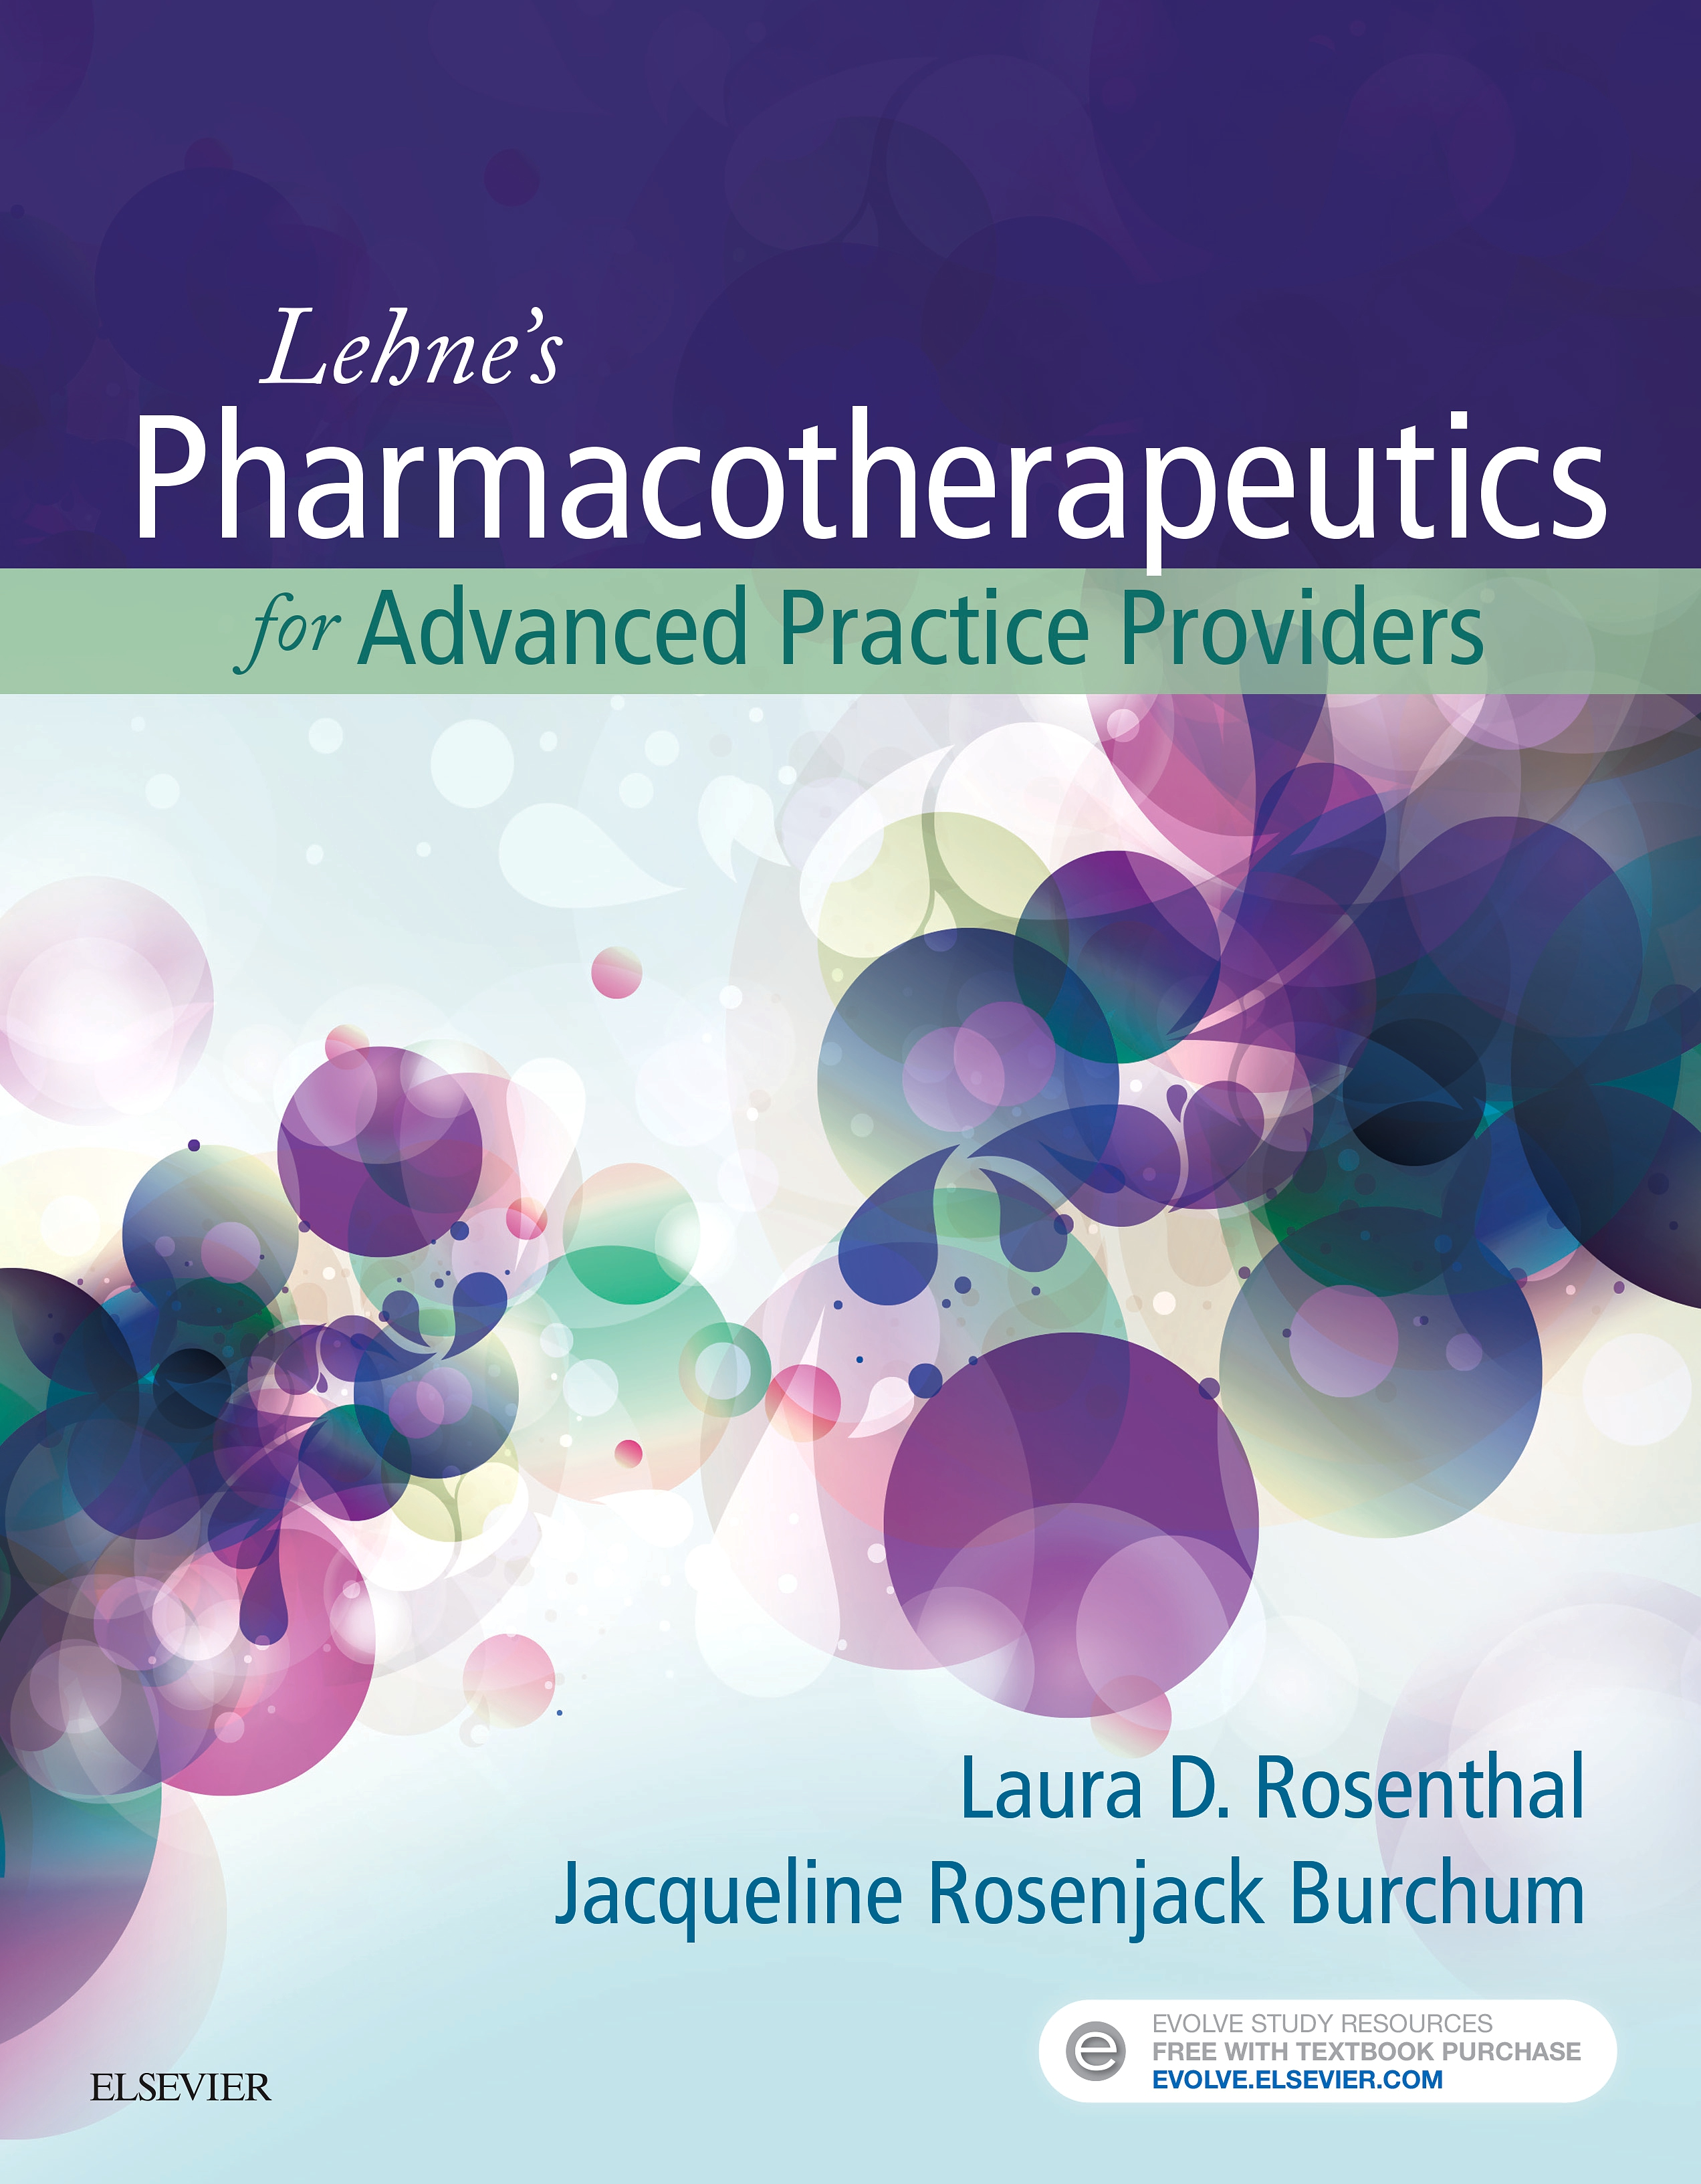 Evolve Resources for Lehne's Pharmacotherapeutics for Advanced Practice Providers